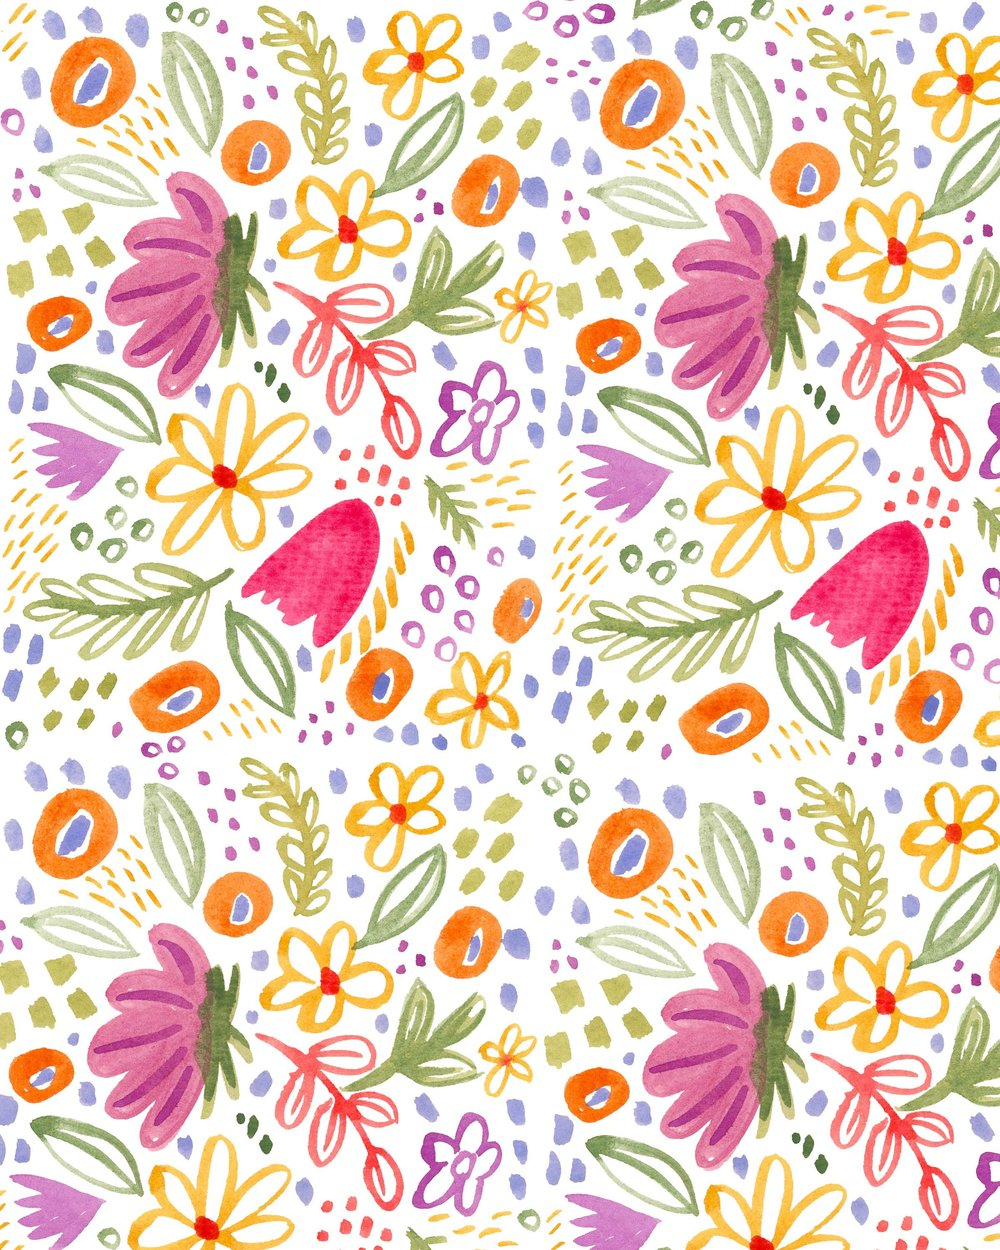 WC Floral Toss #1 Pattern WS.jpg